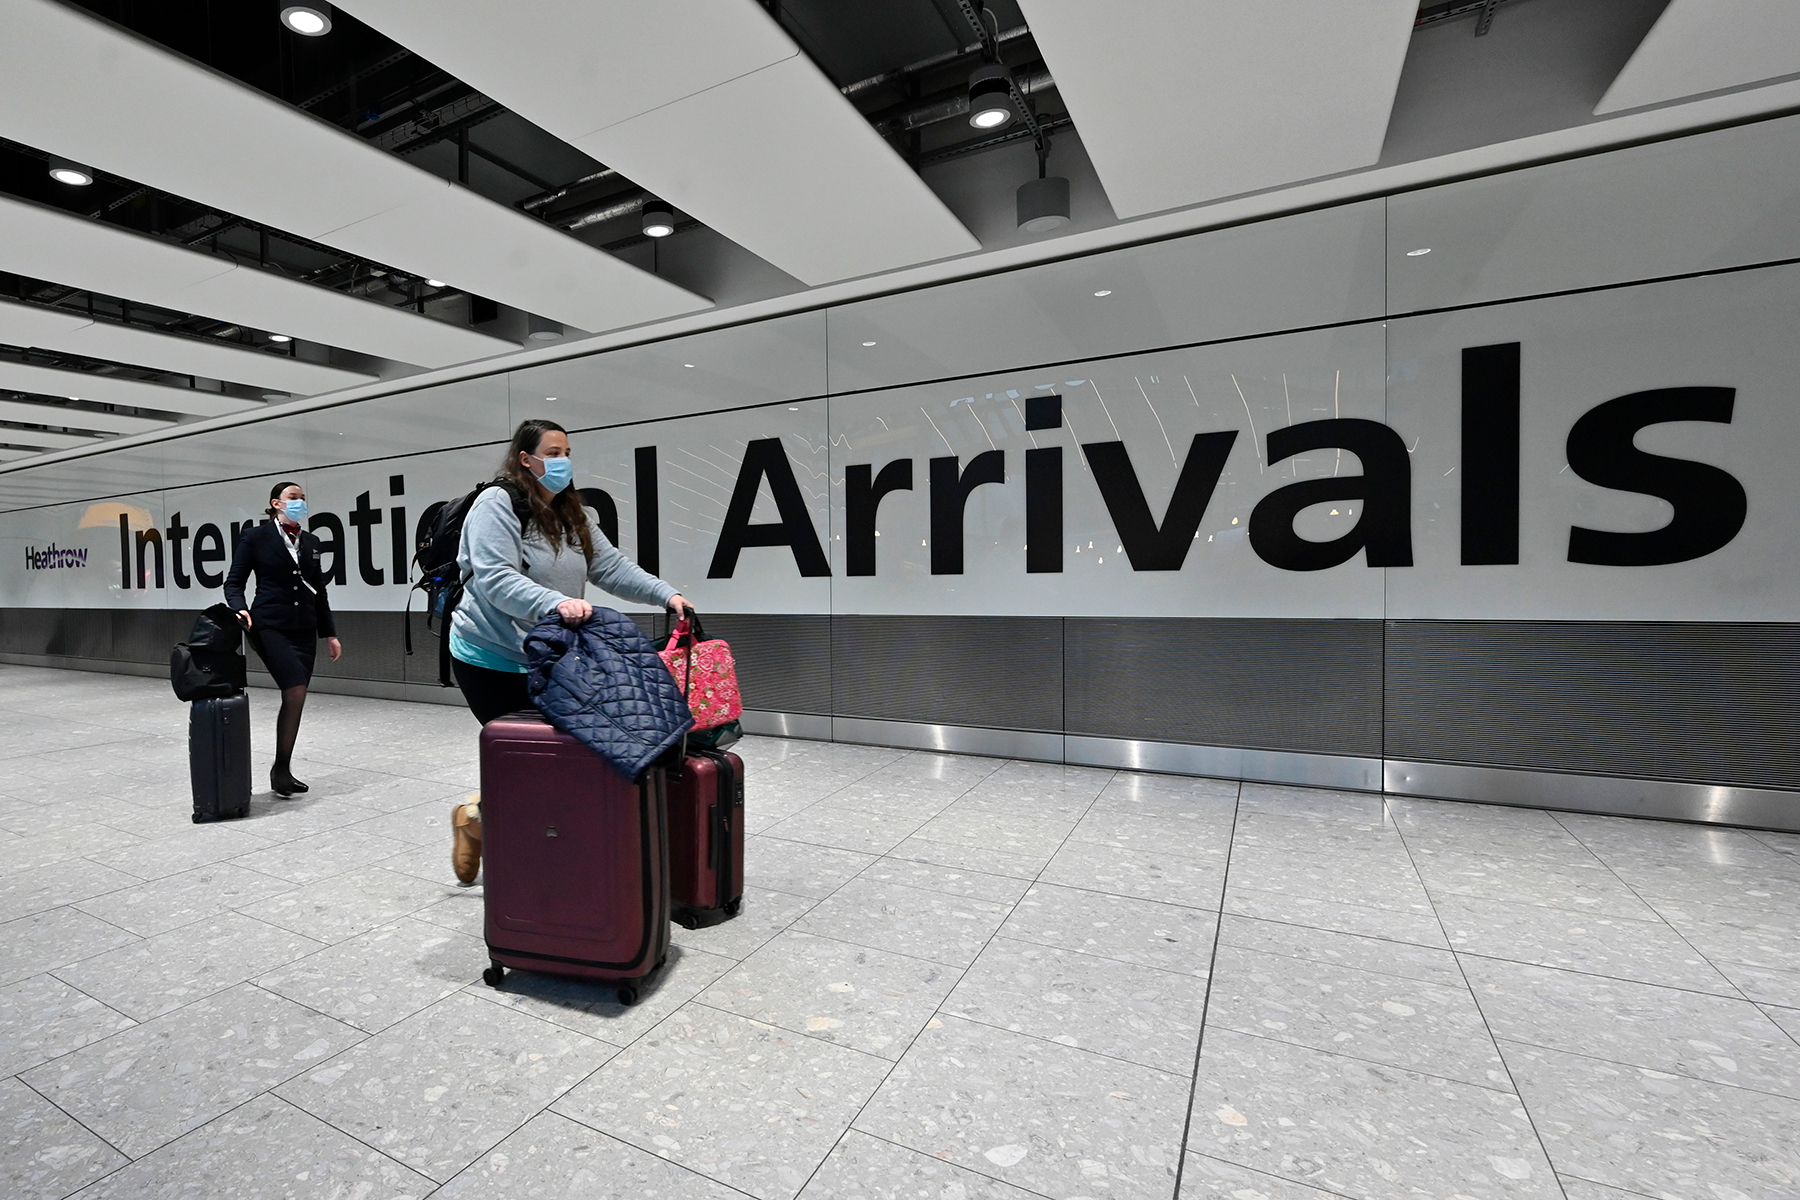 Passengers arrive with lugagge at the Terminal 5 international arrivals hall at London Heathrow Airport